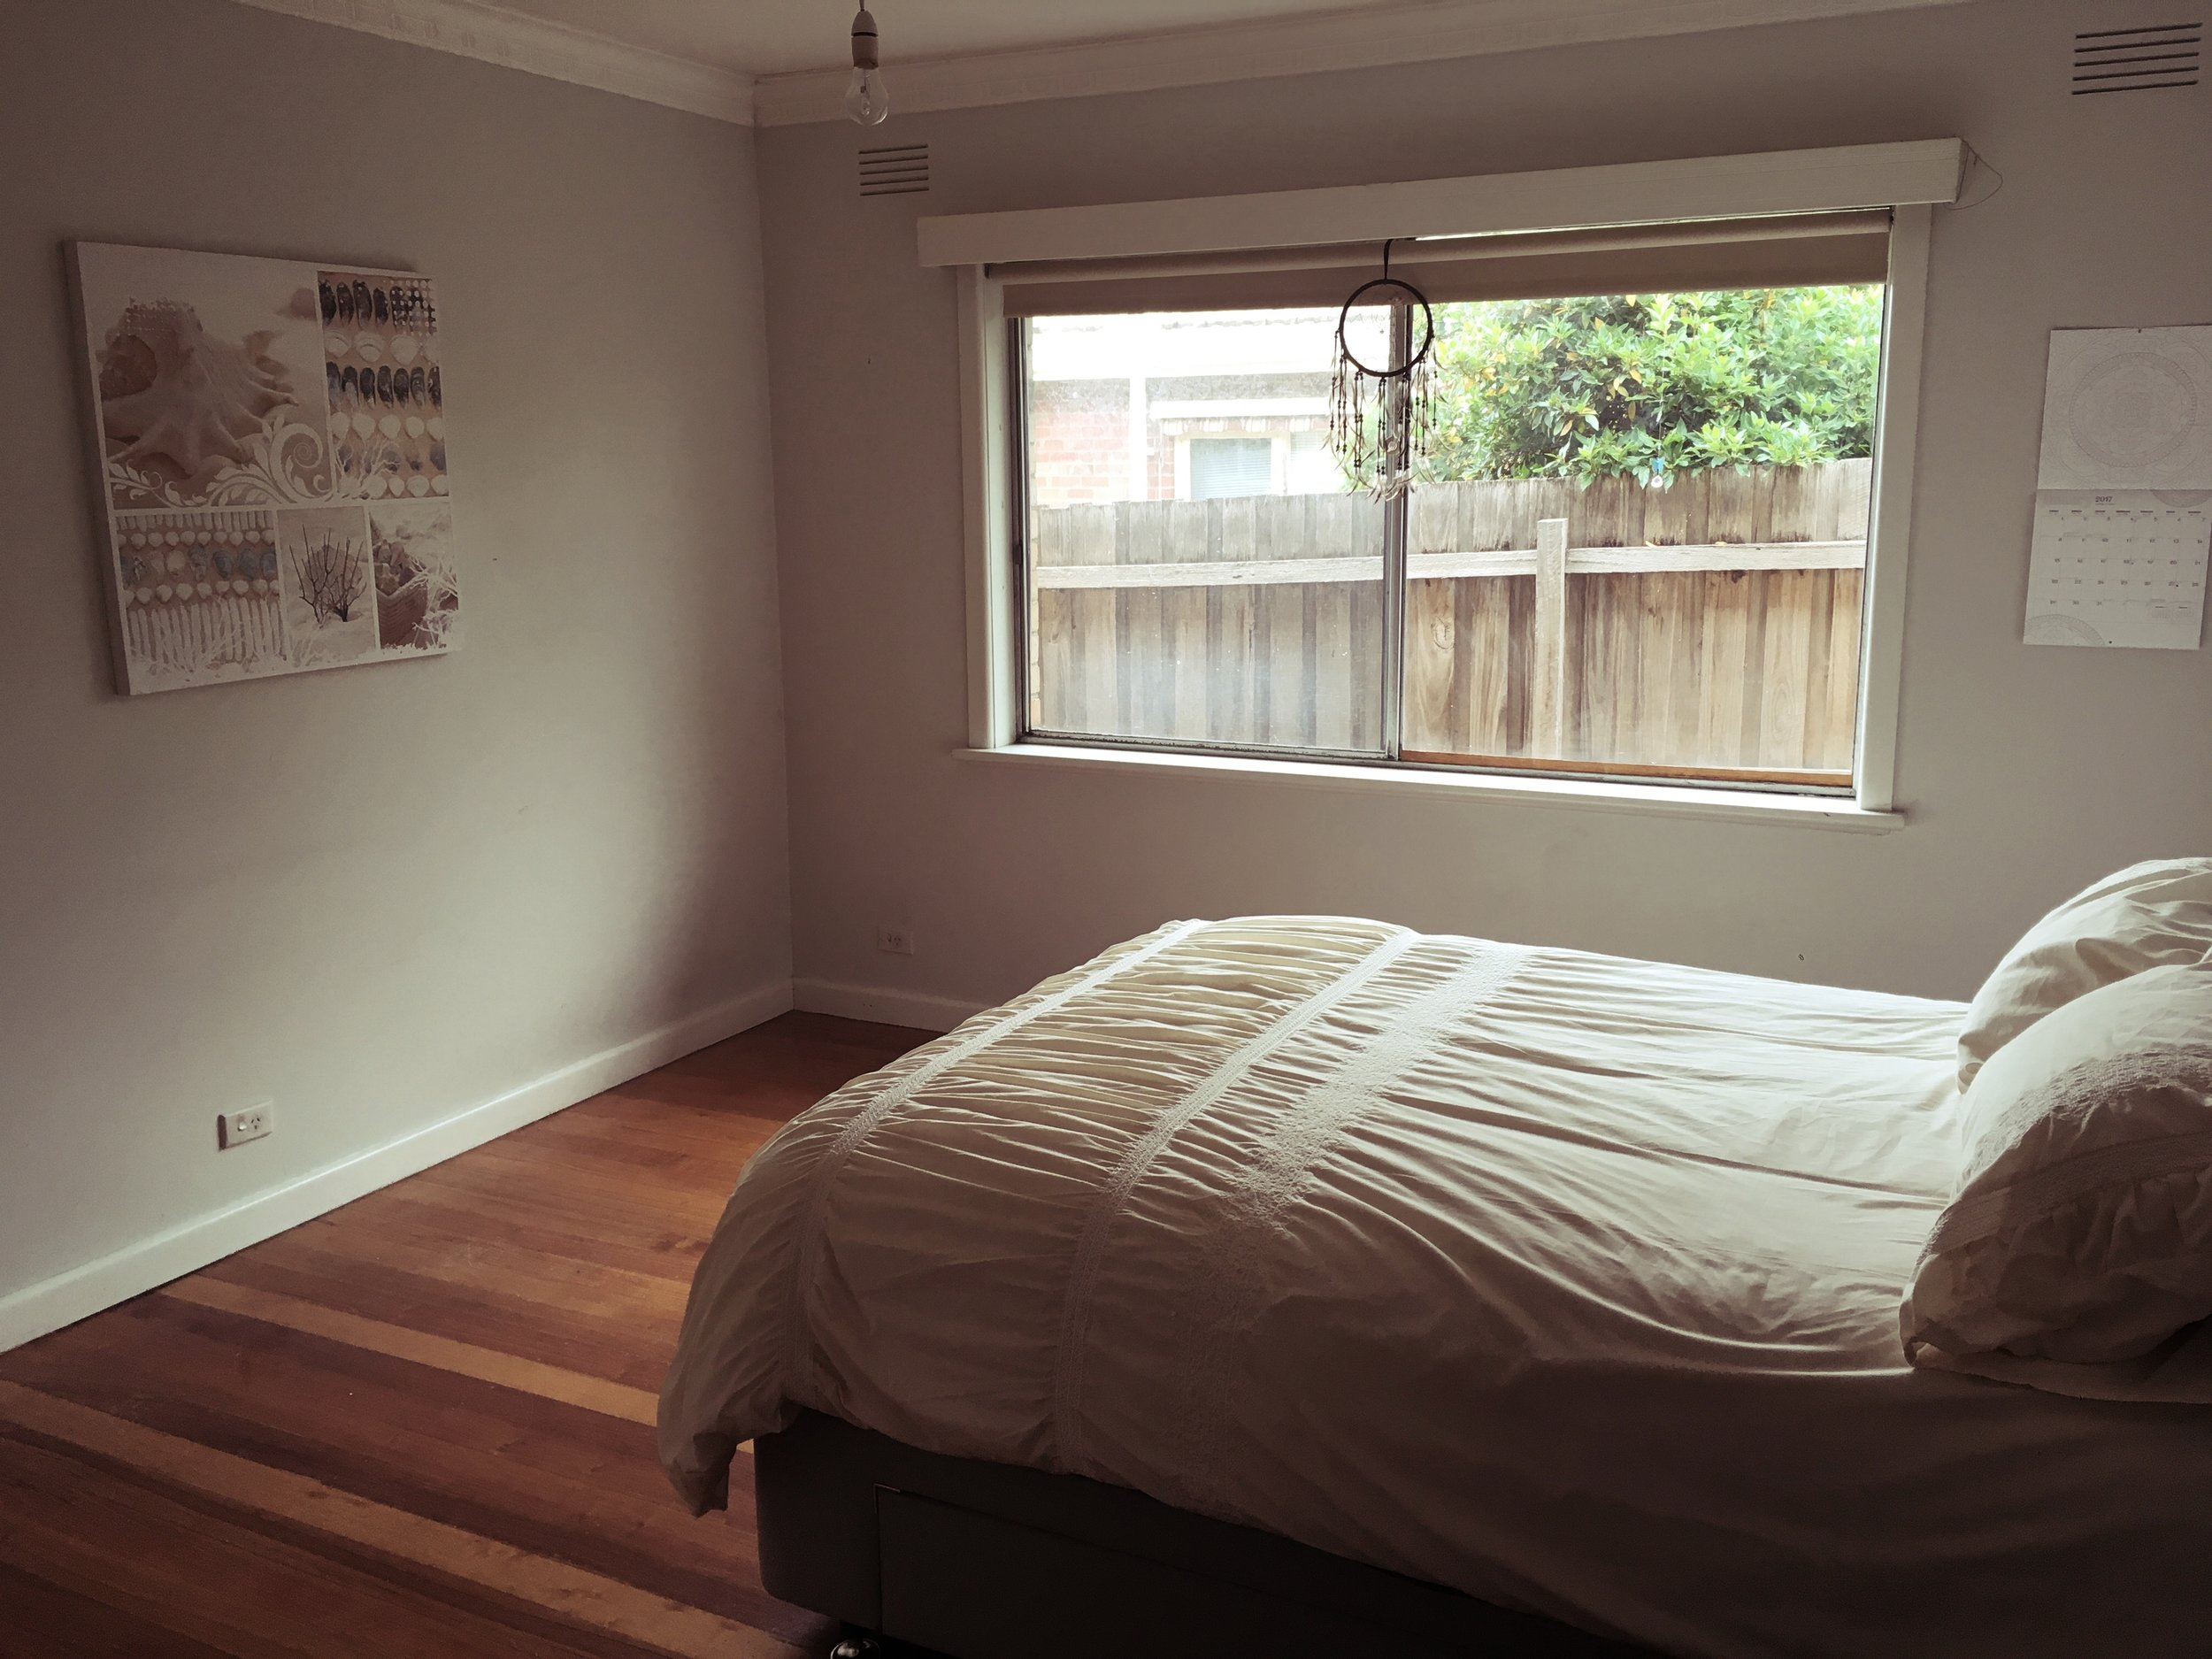 THE ACTUAL MAGICAL BED. SAD TO SEE GO…